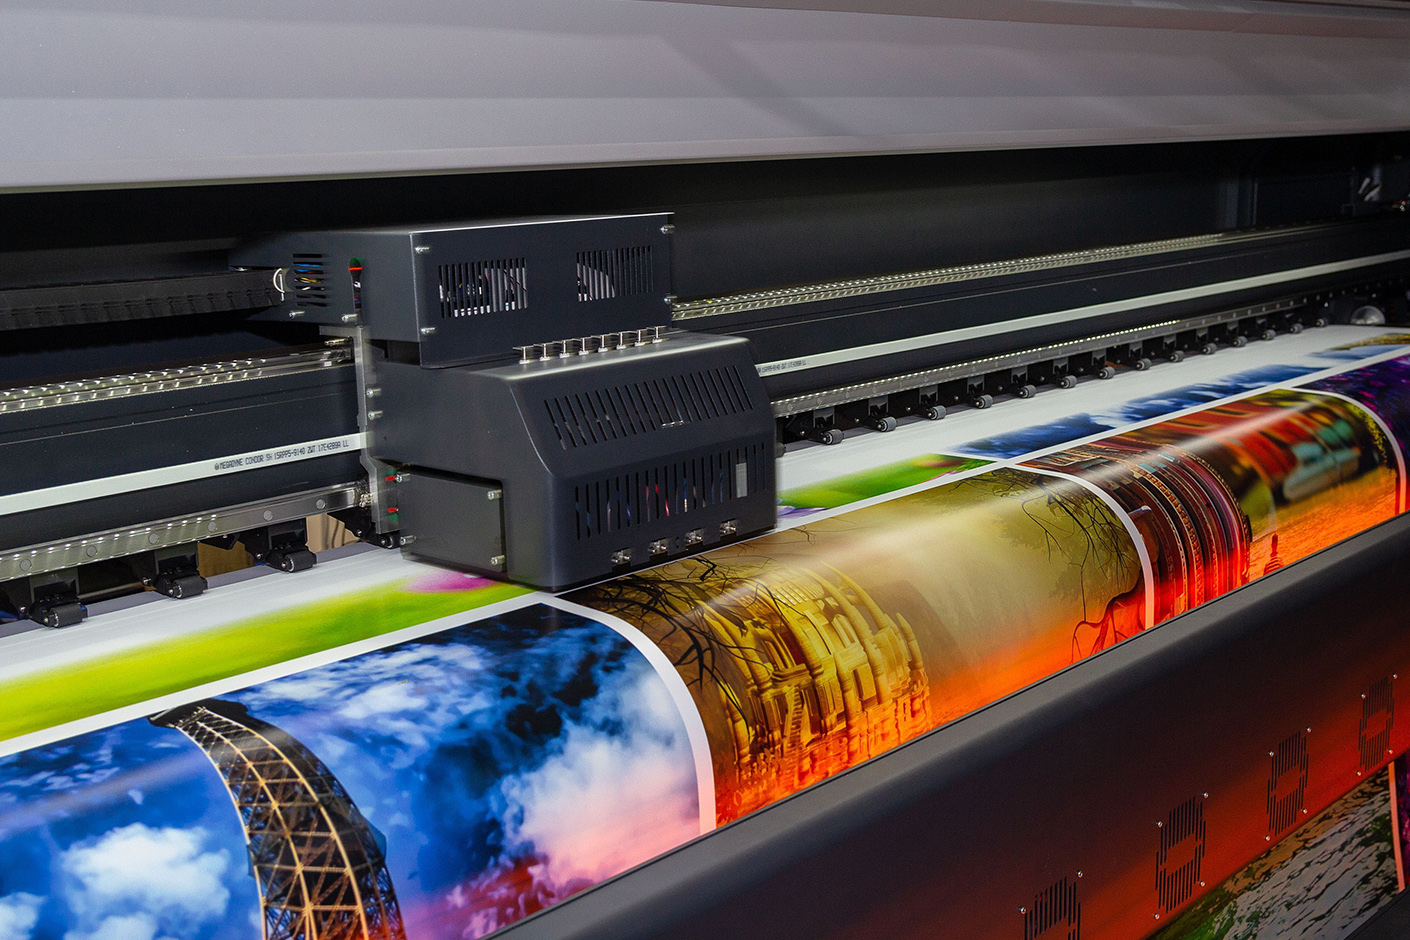 camelot-pictures-printing-service